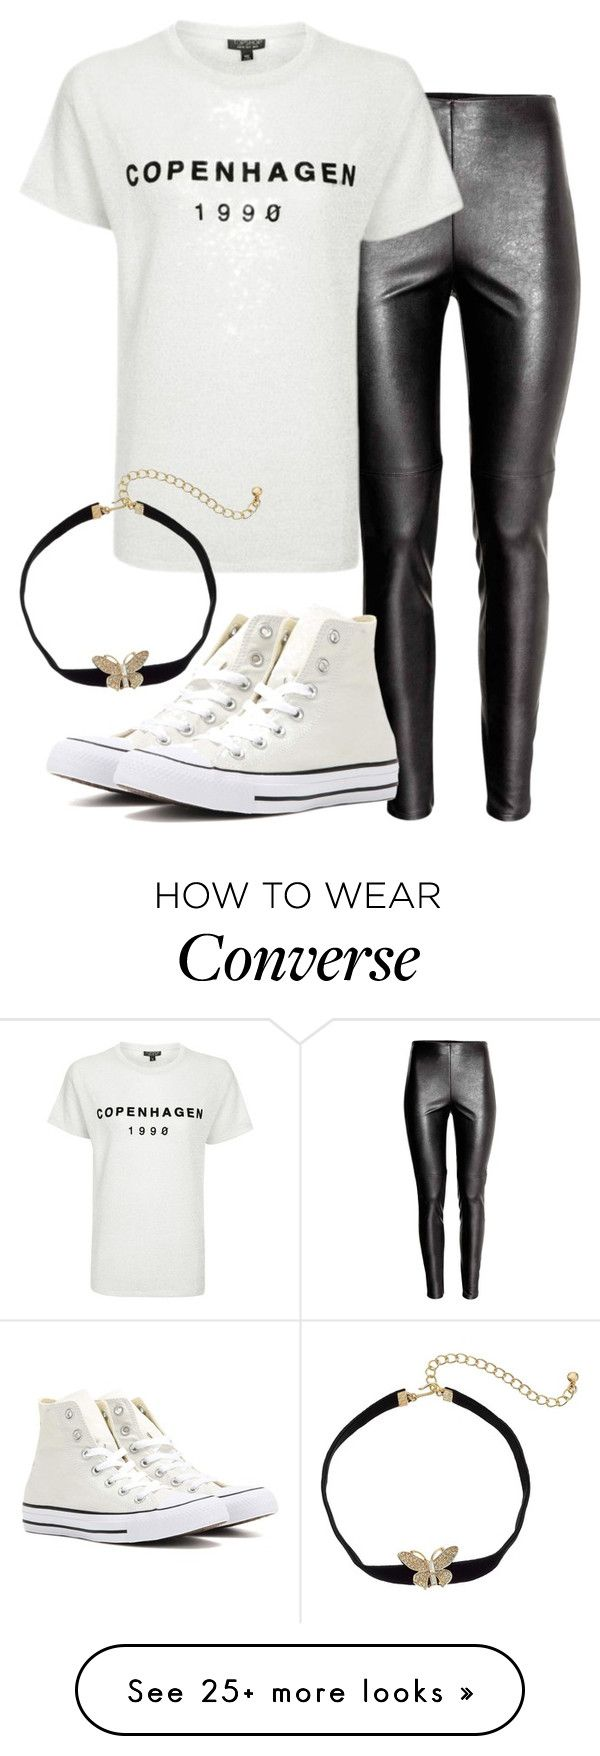 """""""bria insp"""" by bekahtee on Polyvore featuring Topshop, Converse and Kenneth Jay Lane"""